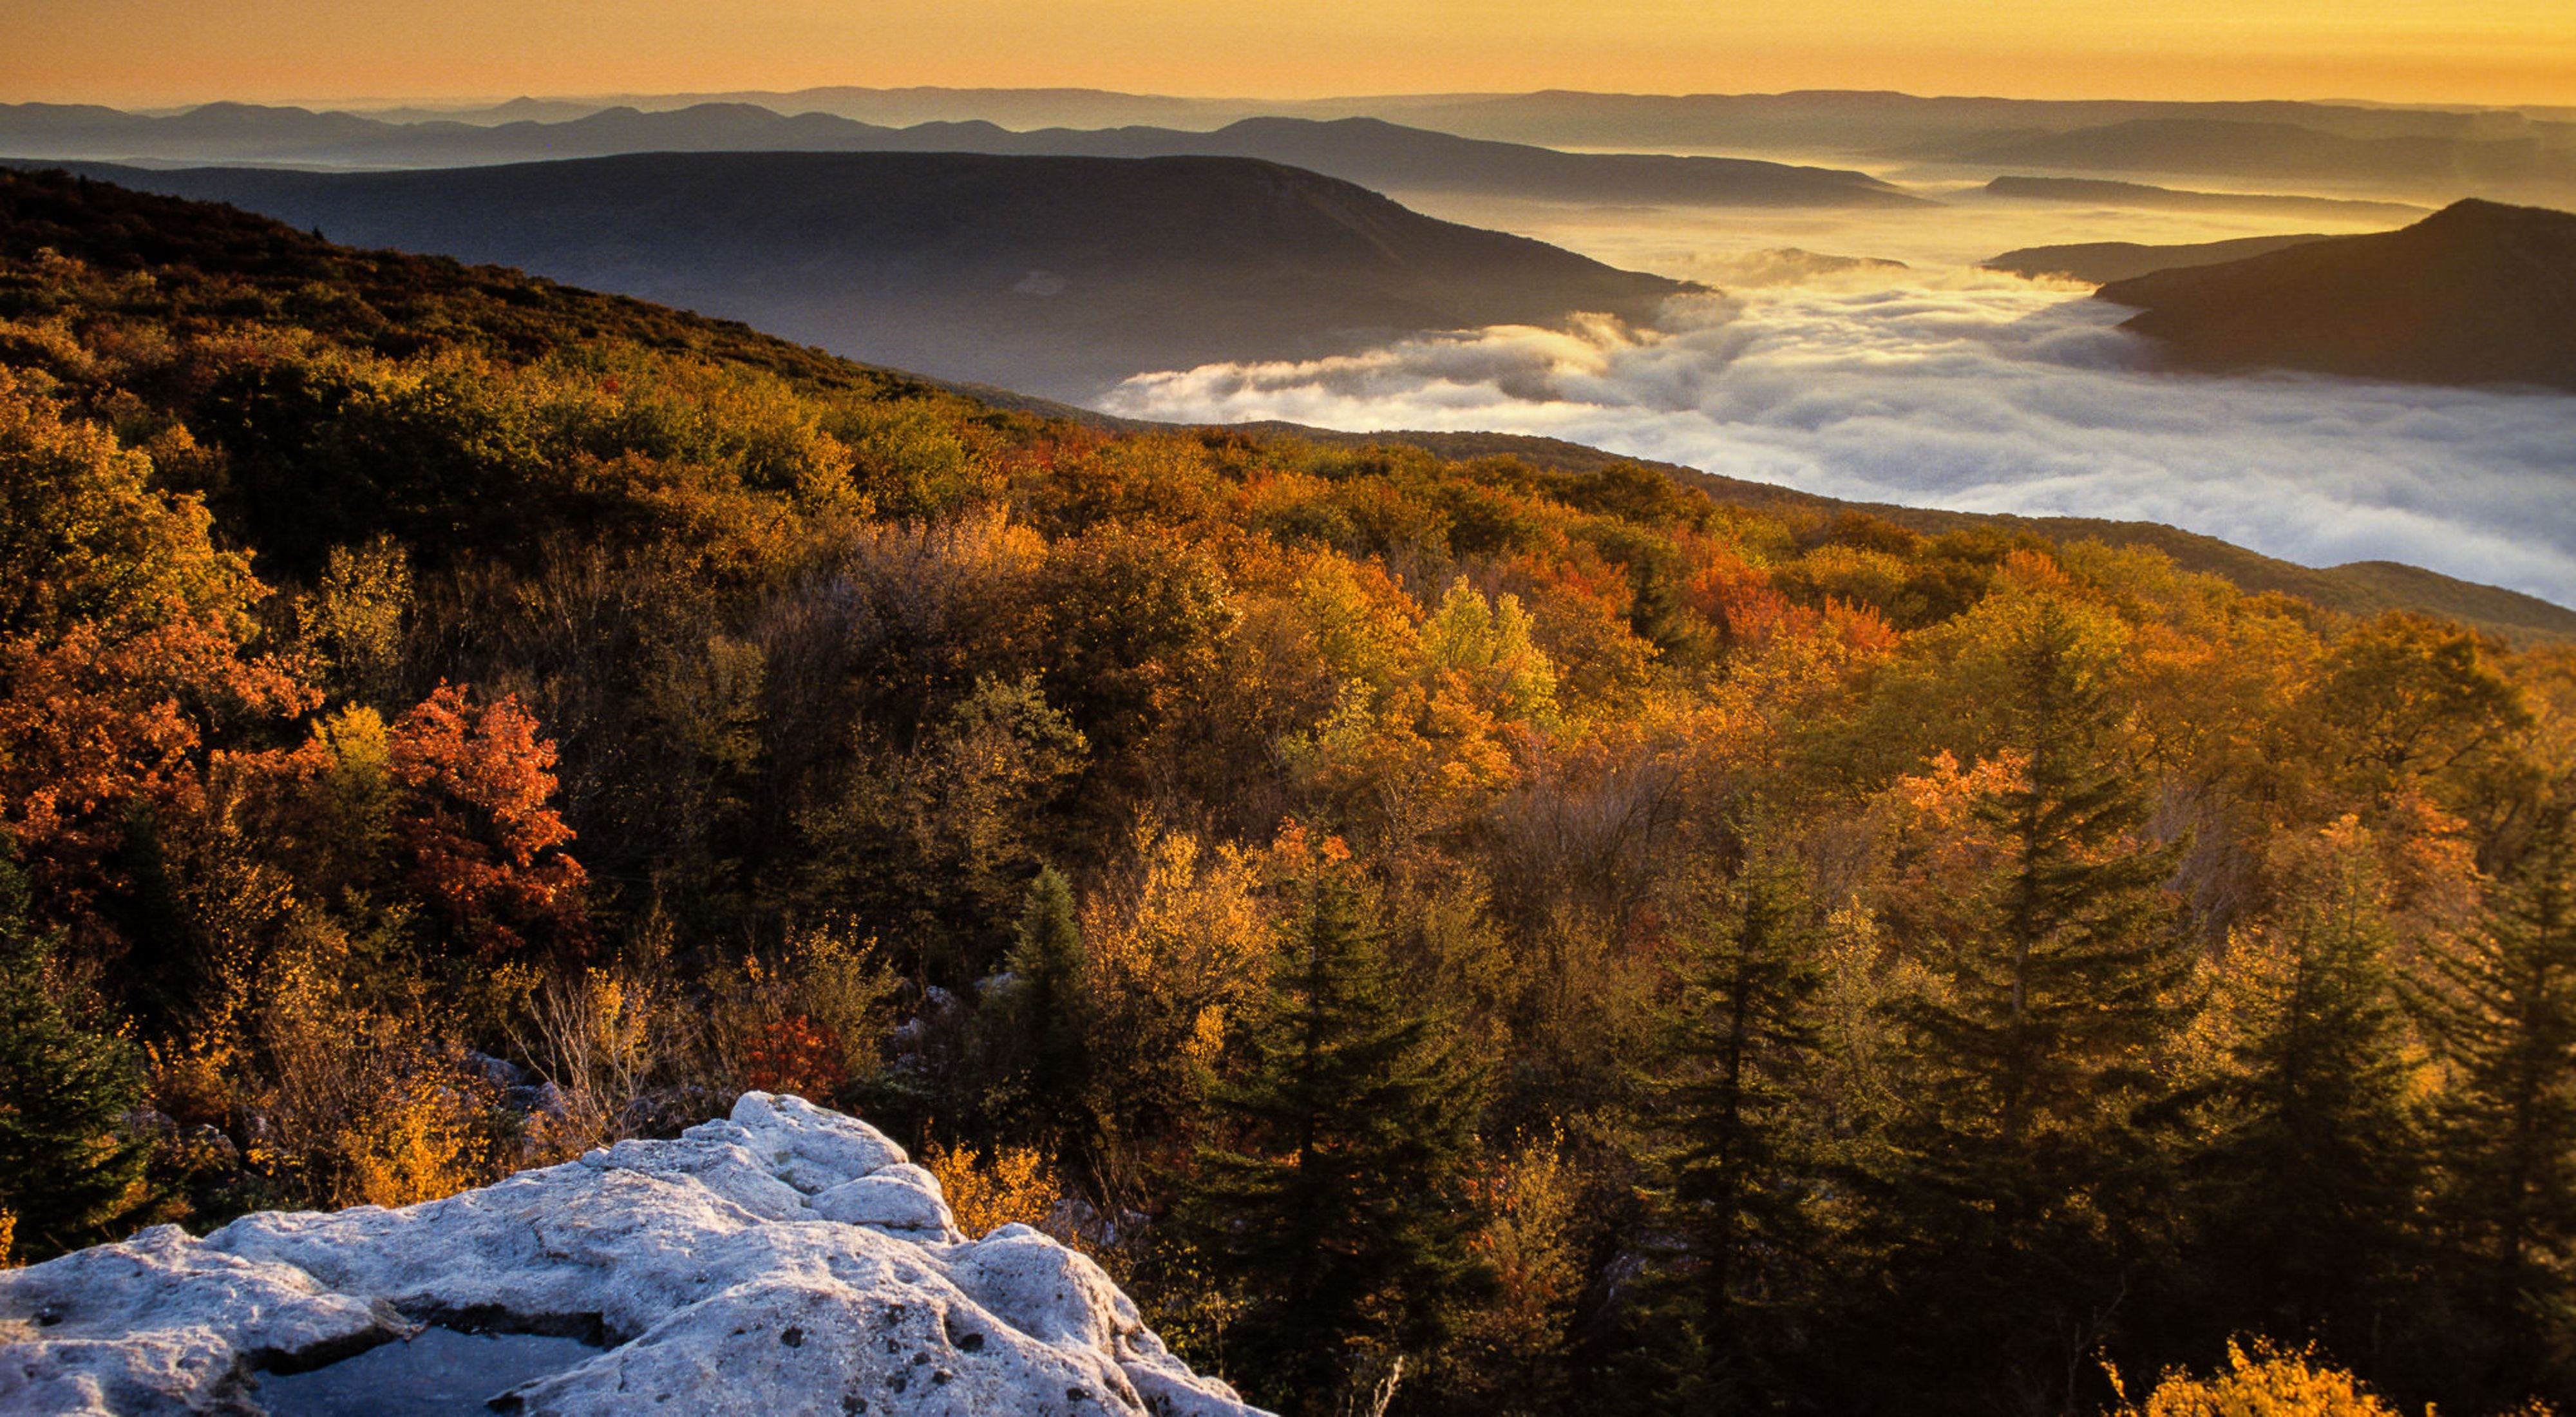 View from a West Virginia mountaintop of fall foliage and fog in the valley.